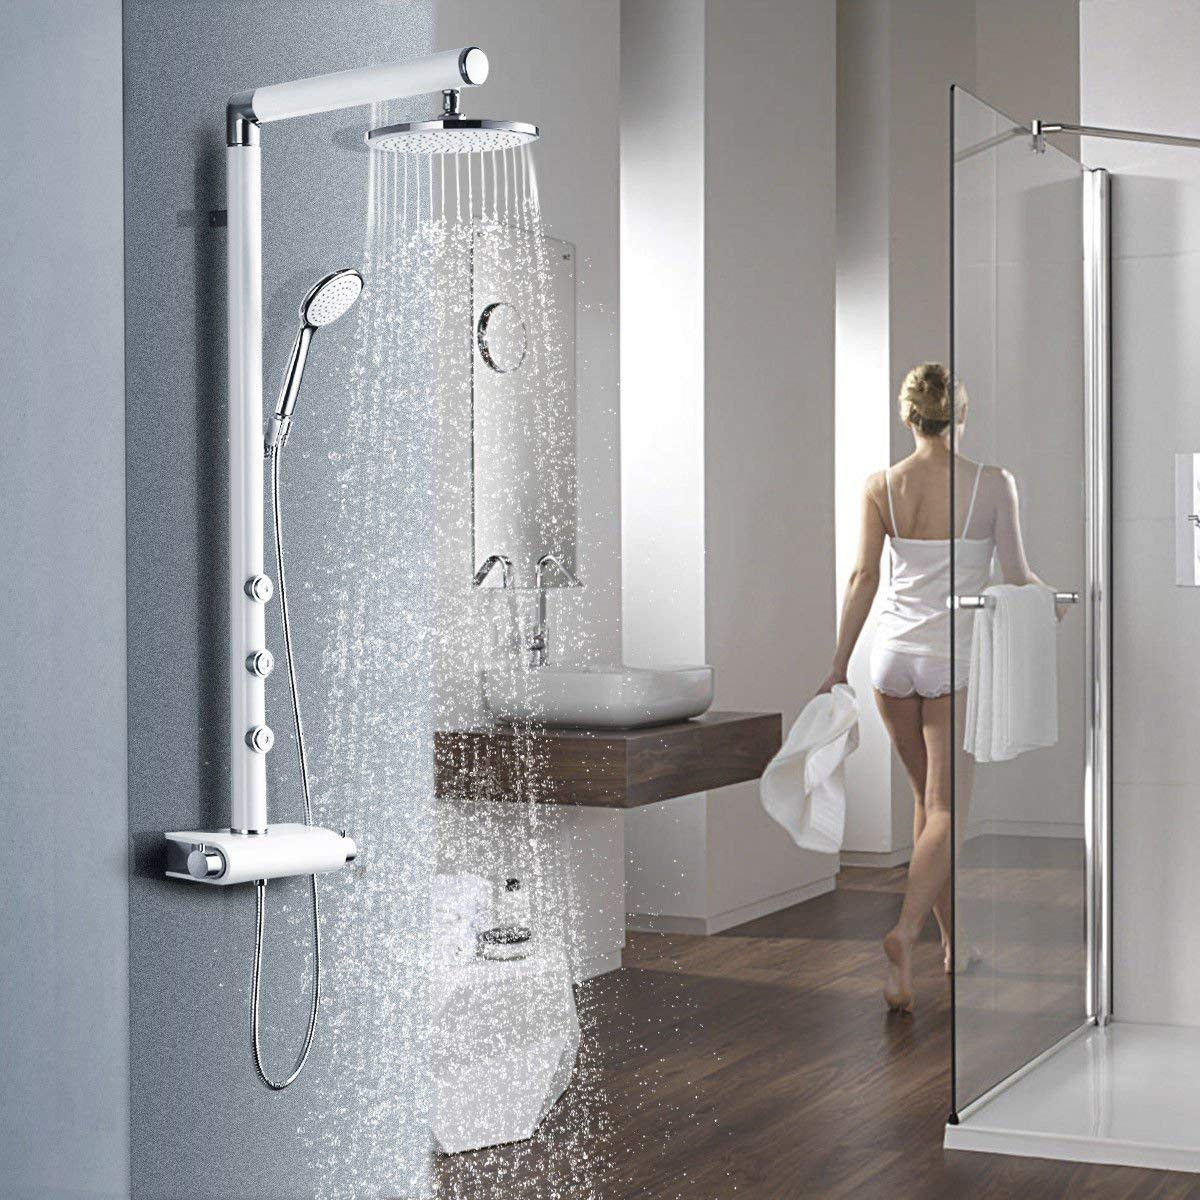 4. Giantex Rainfall Waterfall Shower Panel